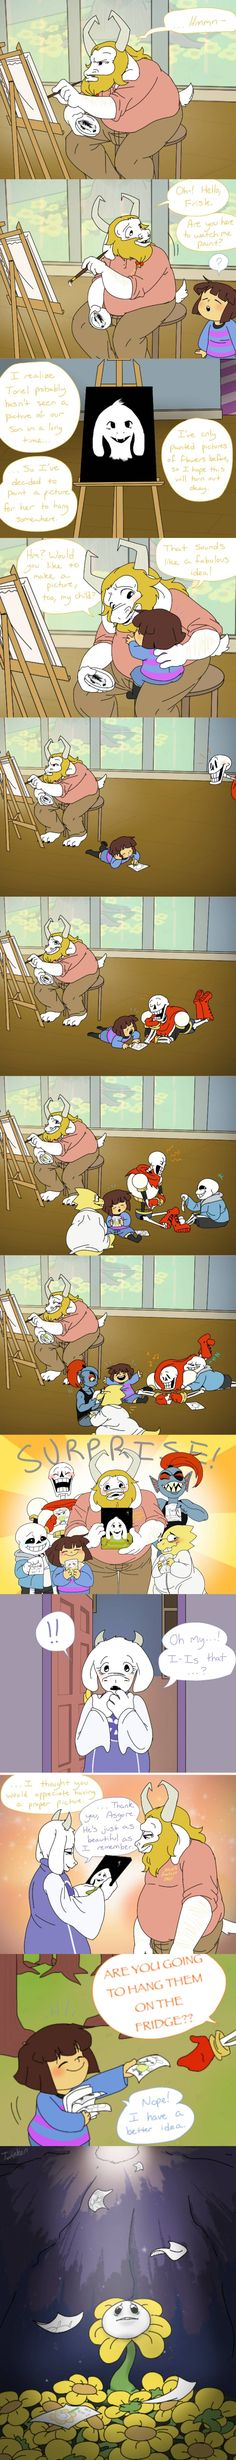 "UNDERTALE EMOTIONS! Oh good gods, I'm crying ._.<<ONE OF THE ONES THAT FLOWEY GETS SAYS ""I MISS YOU"""